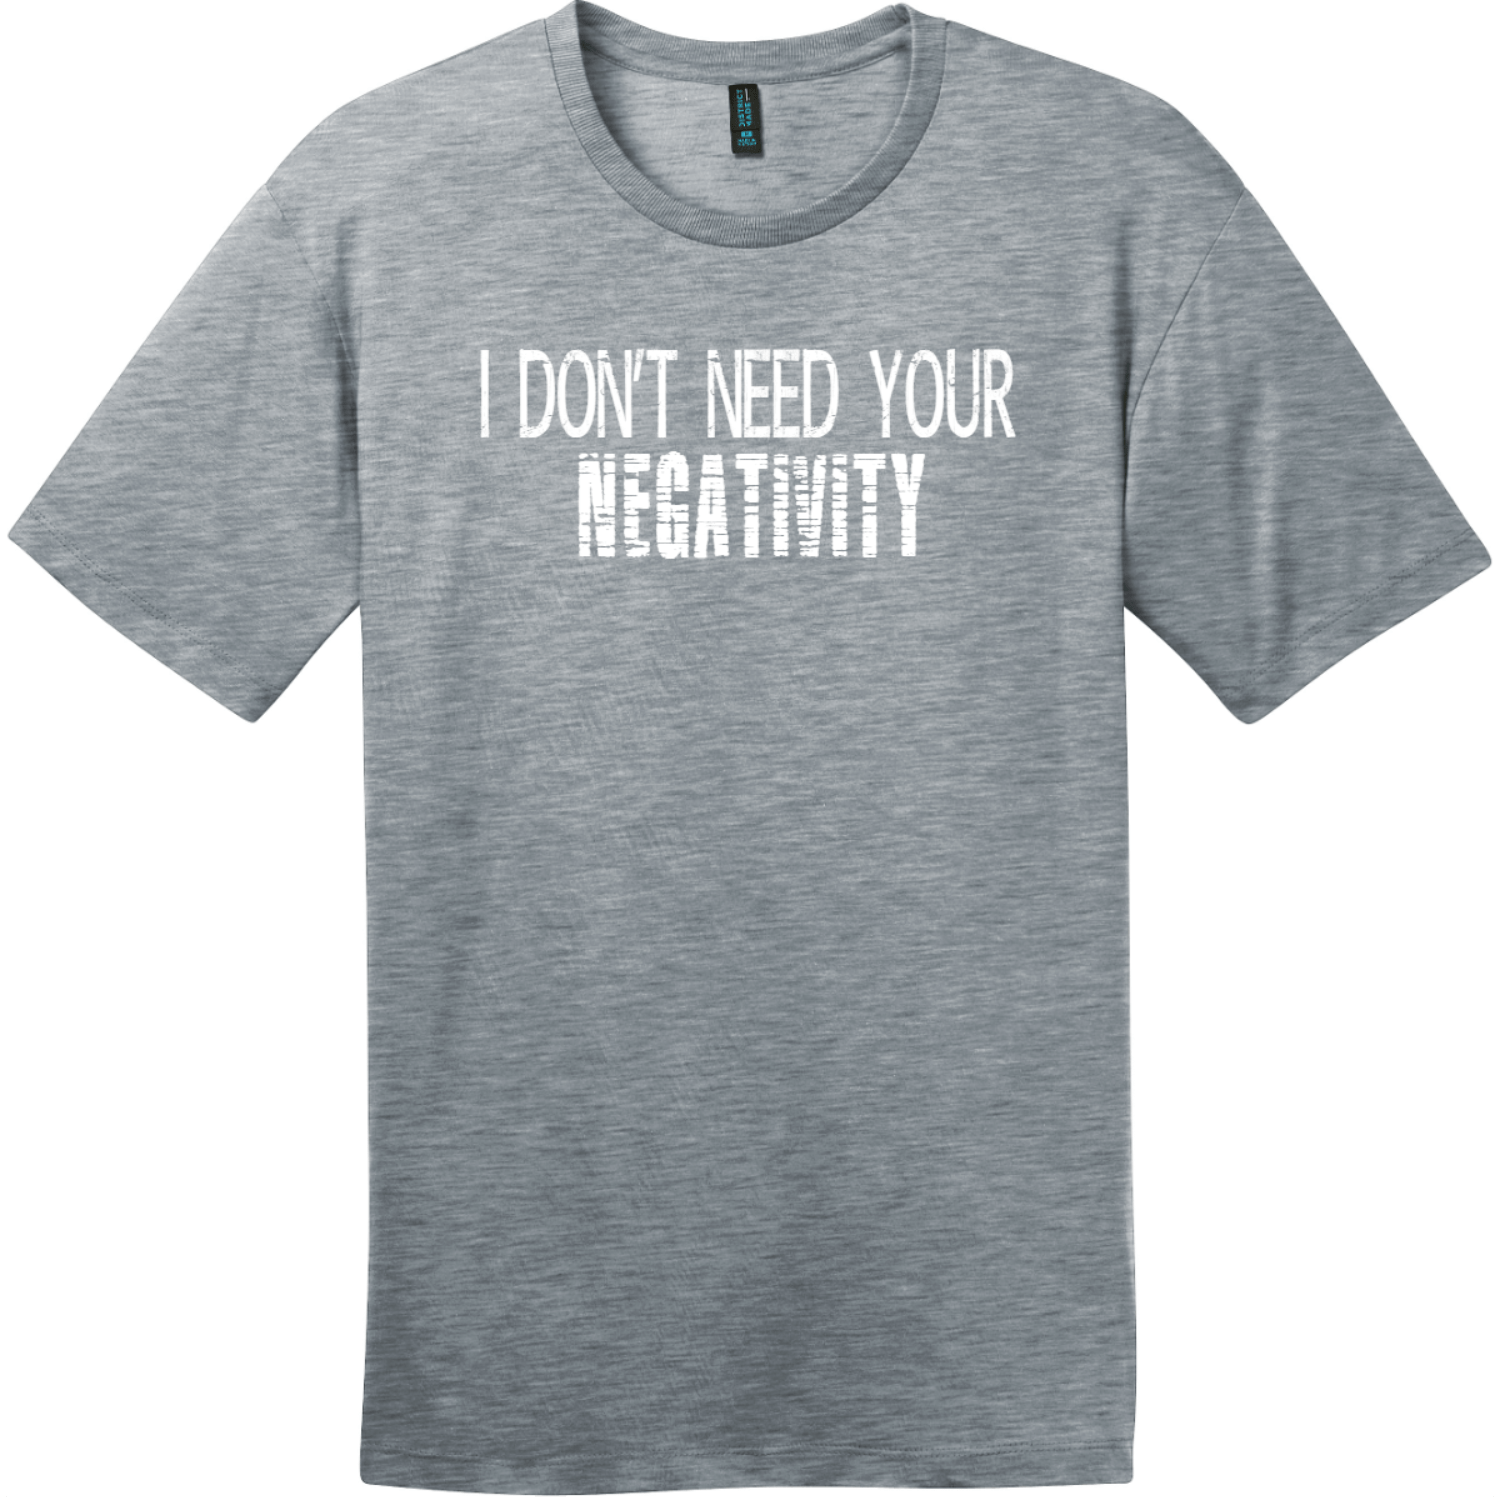 I Don't Need Your Negativity T-Shirt Heathered Steel District Perfect Weight Tee DT104